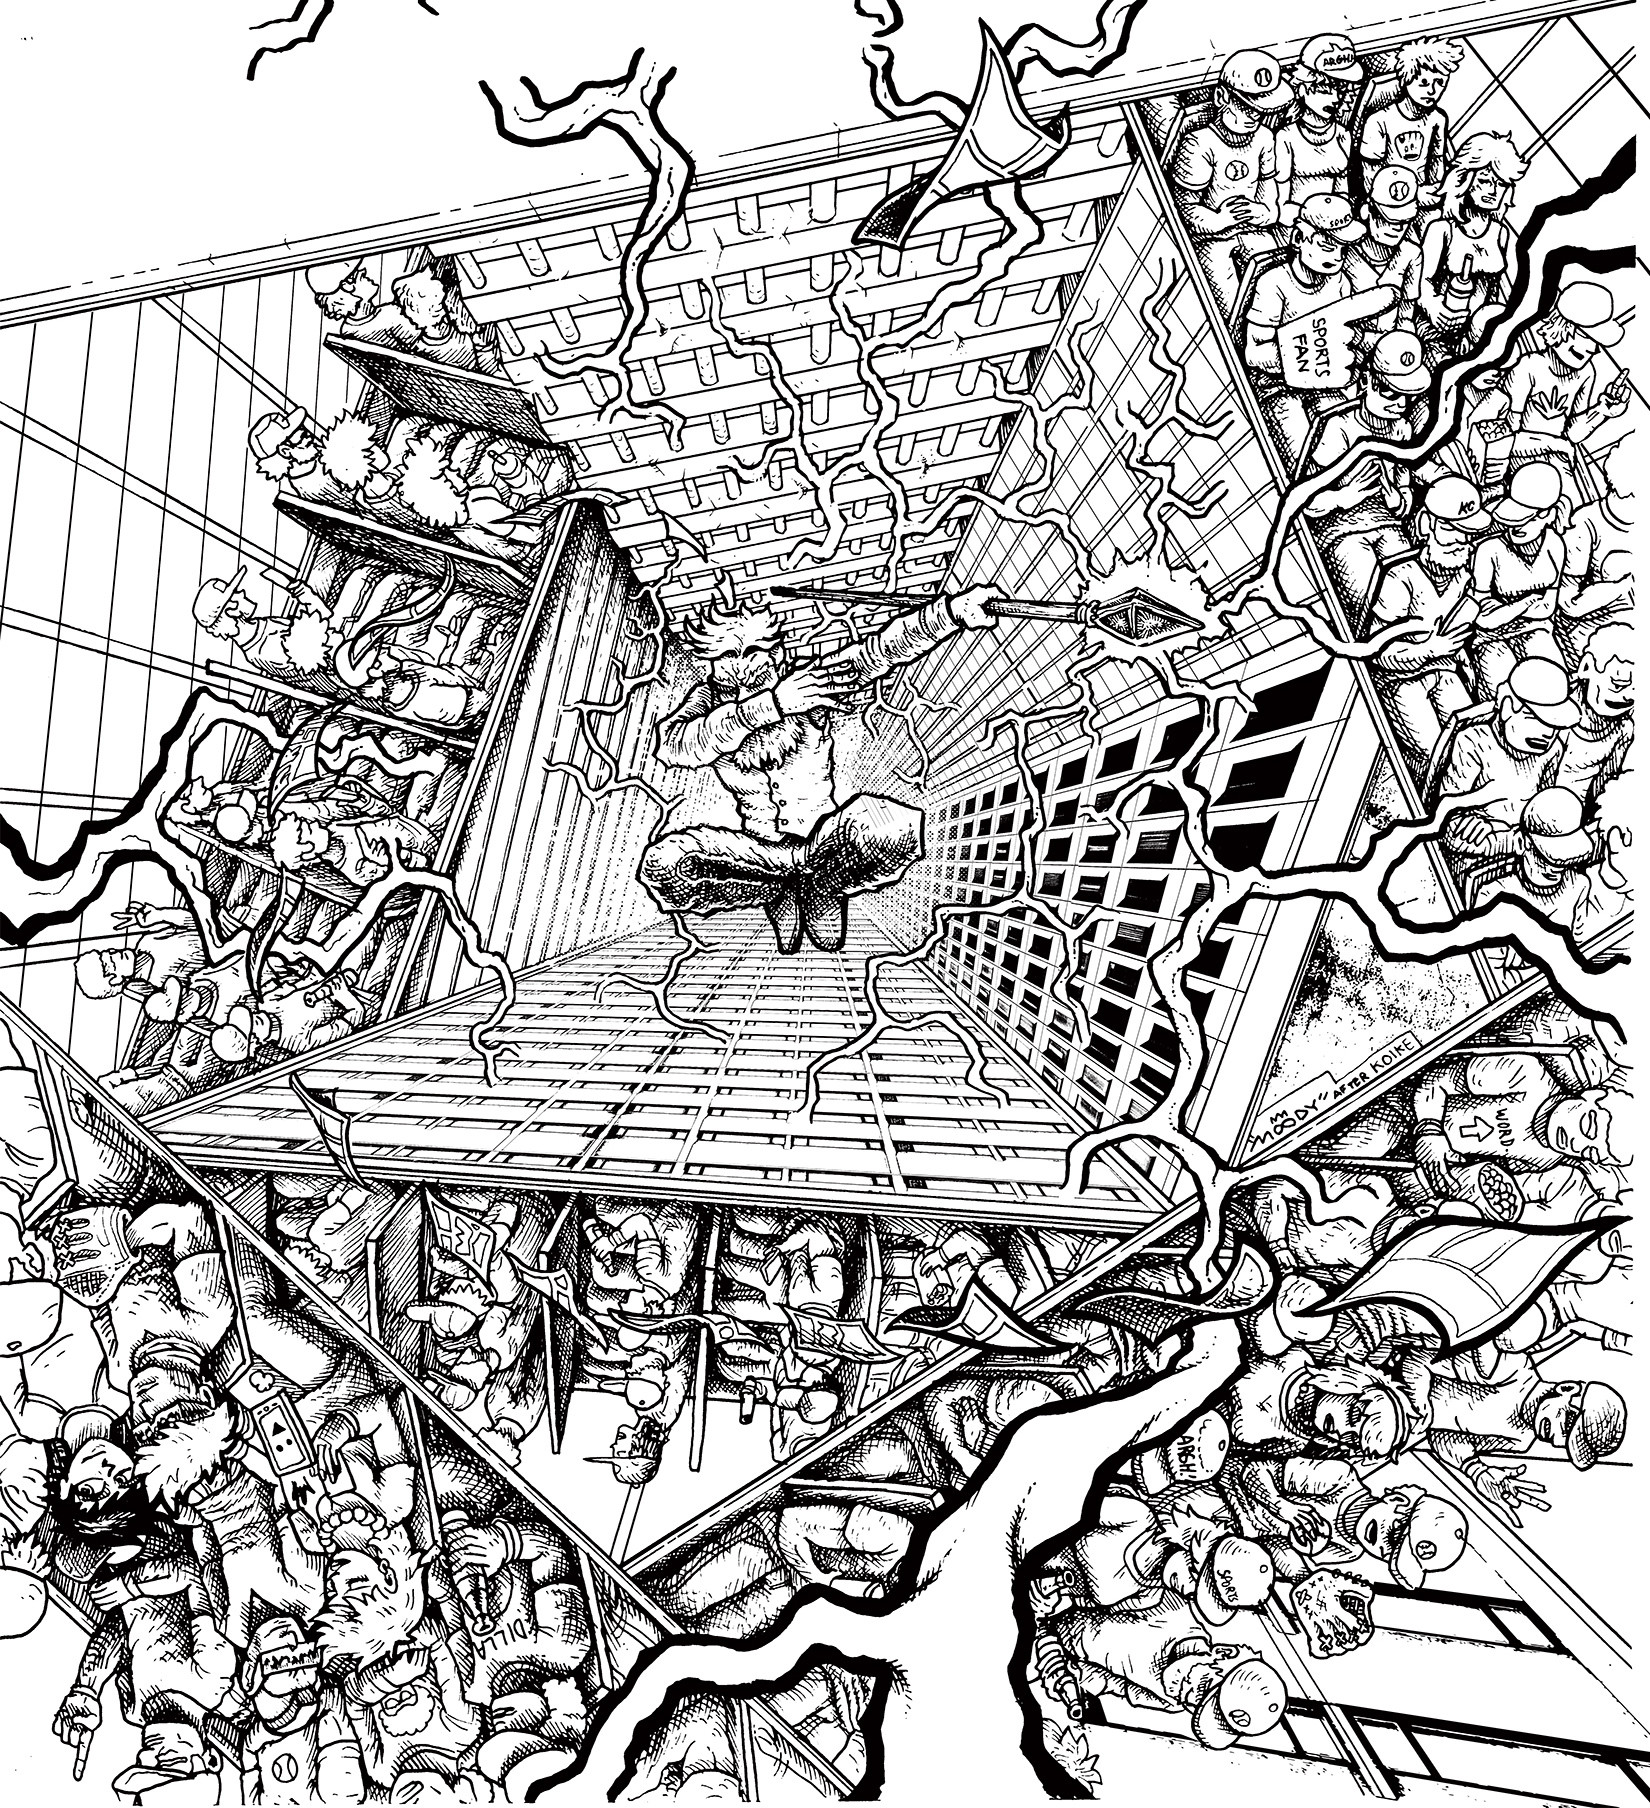 Buster moody buster moody cursewords cover inks2